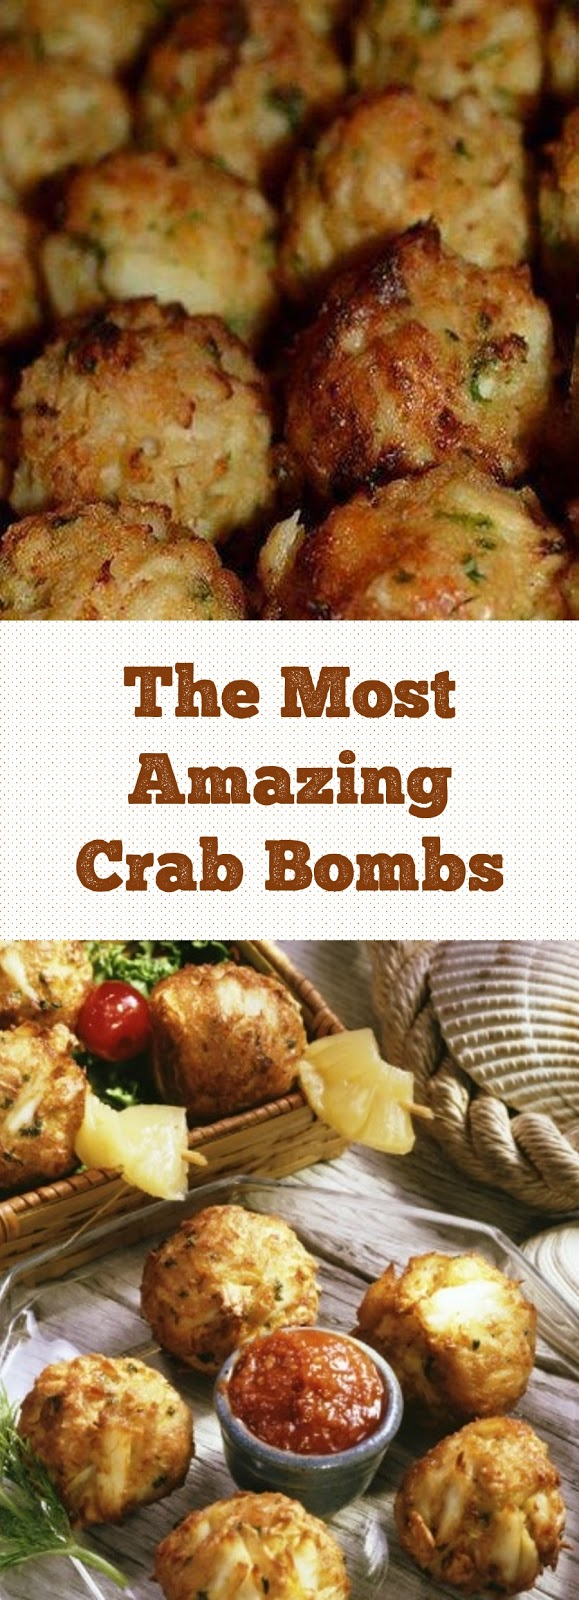 The Most Amazing Crab Bombs